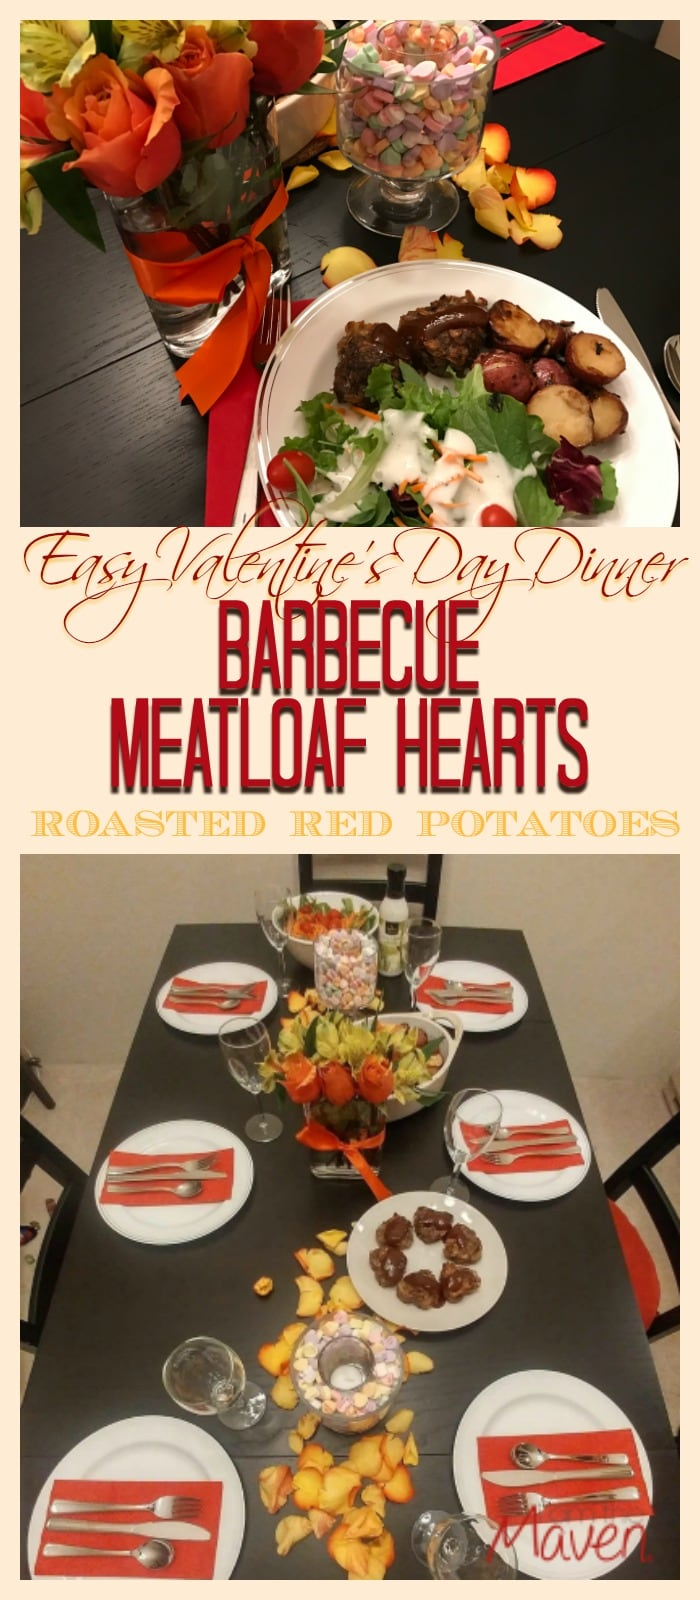 Make an easy Valentine's Day Dinner with Barbecue Meatloaf Hearts, Roasted Red Potatoes and Green Salad. Your local Safeway or Albertsons has everything you need, including an incredible floral department. This post is sponsored by Safeway.